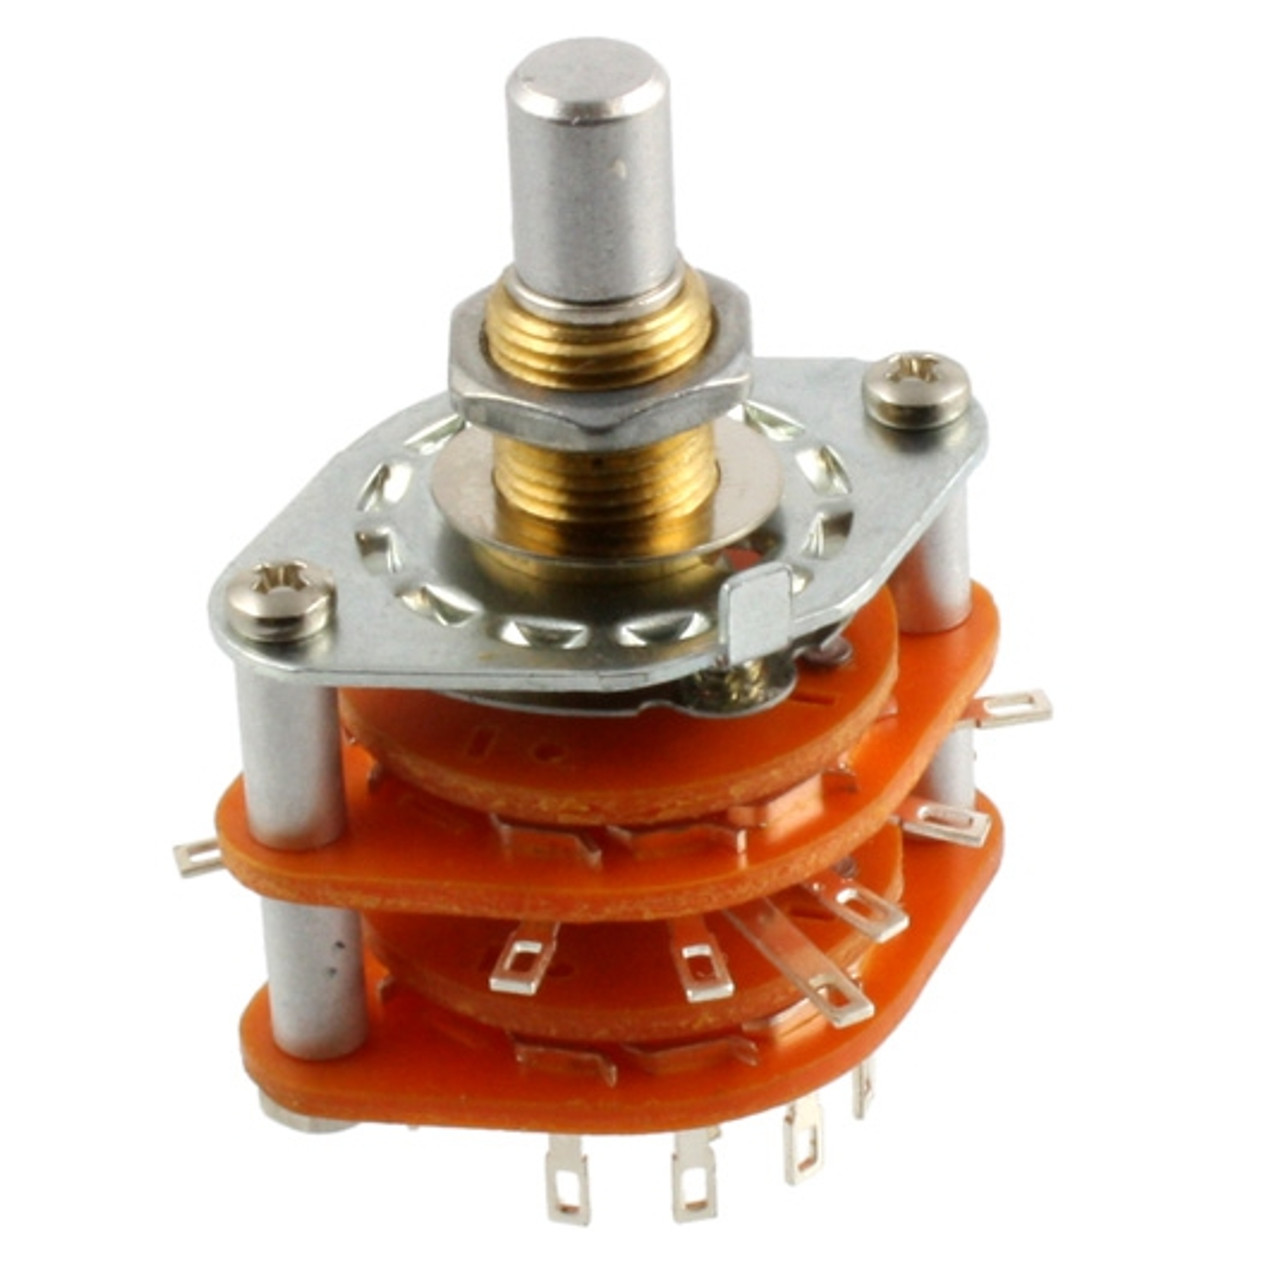 6-Way Rotary Pickup Selector Switch